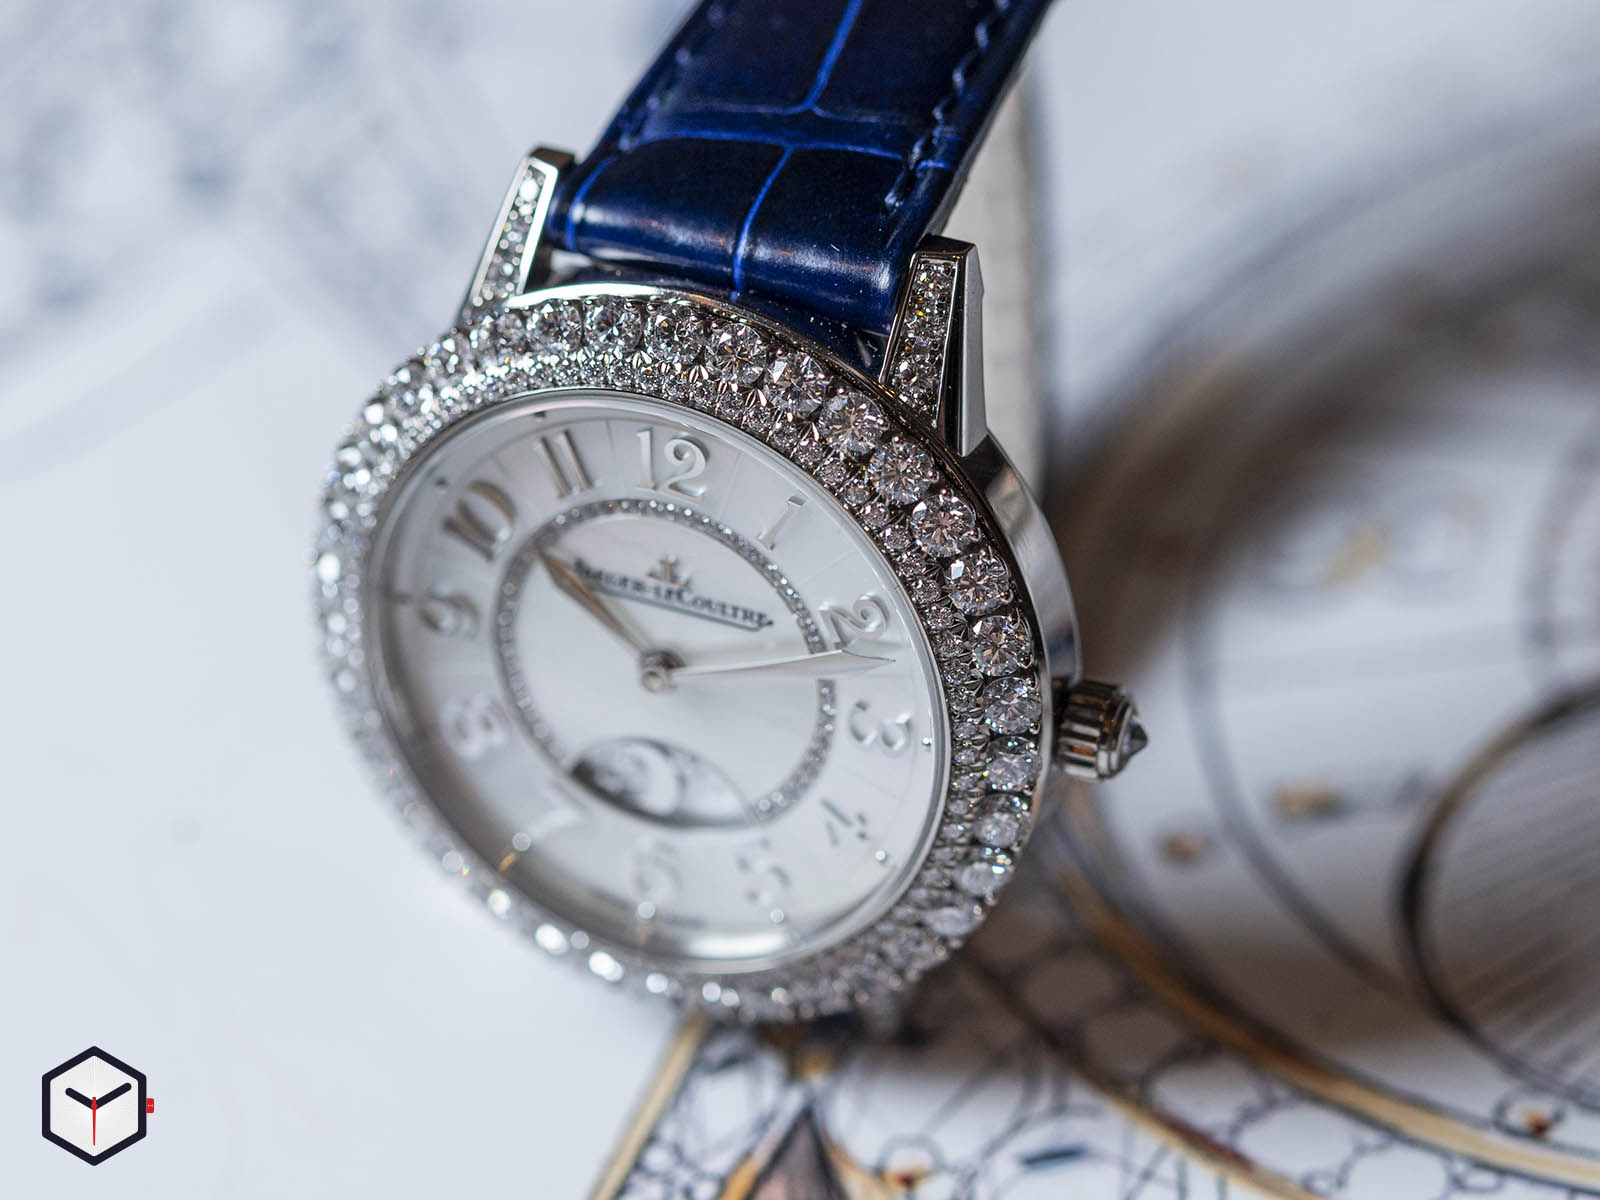 3433570-jaeger-lecoultre-rendez-vous-night-day-white-gold-sihh-2019-3.jpg